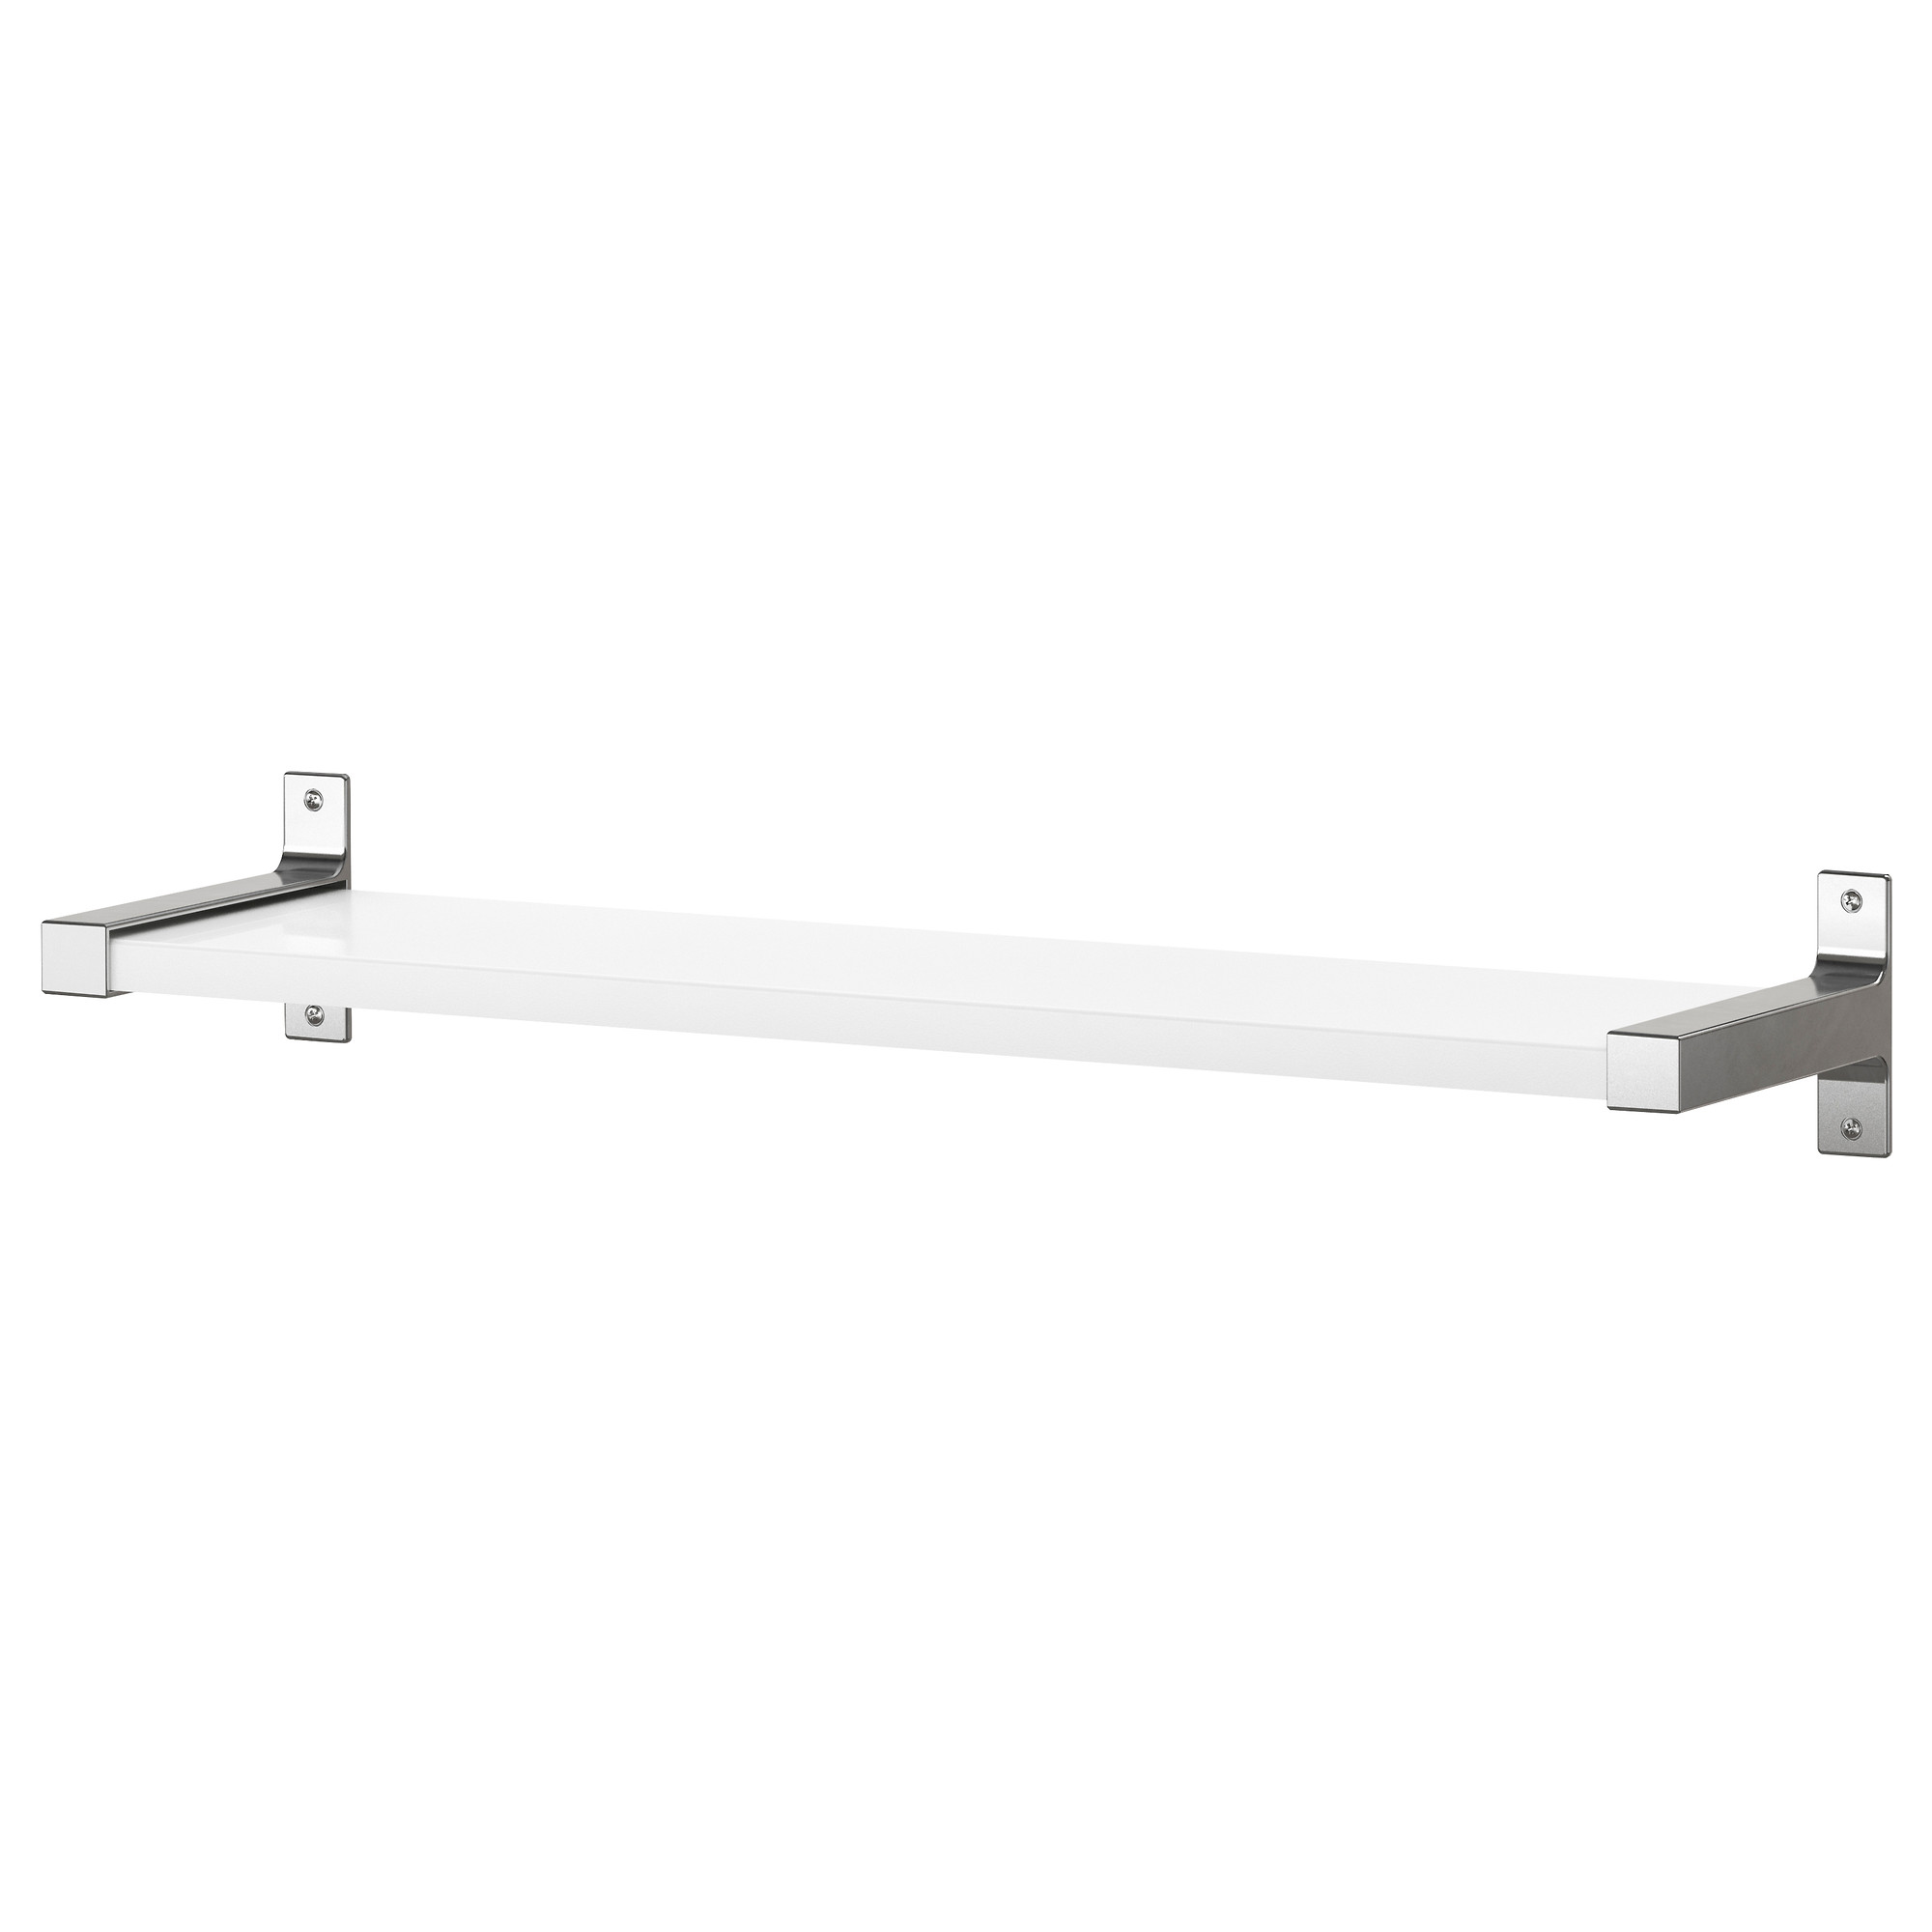 Best EKBY TONY / EKBY BJÄRNUM Wall shelf - IKEA white wall shelves